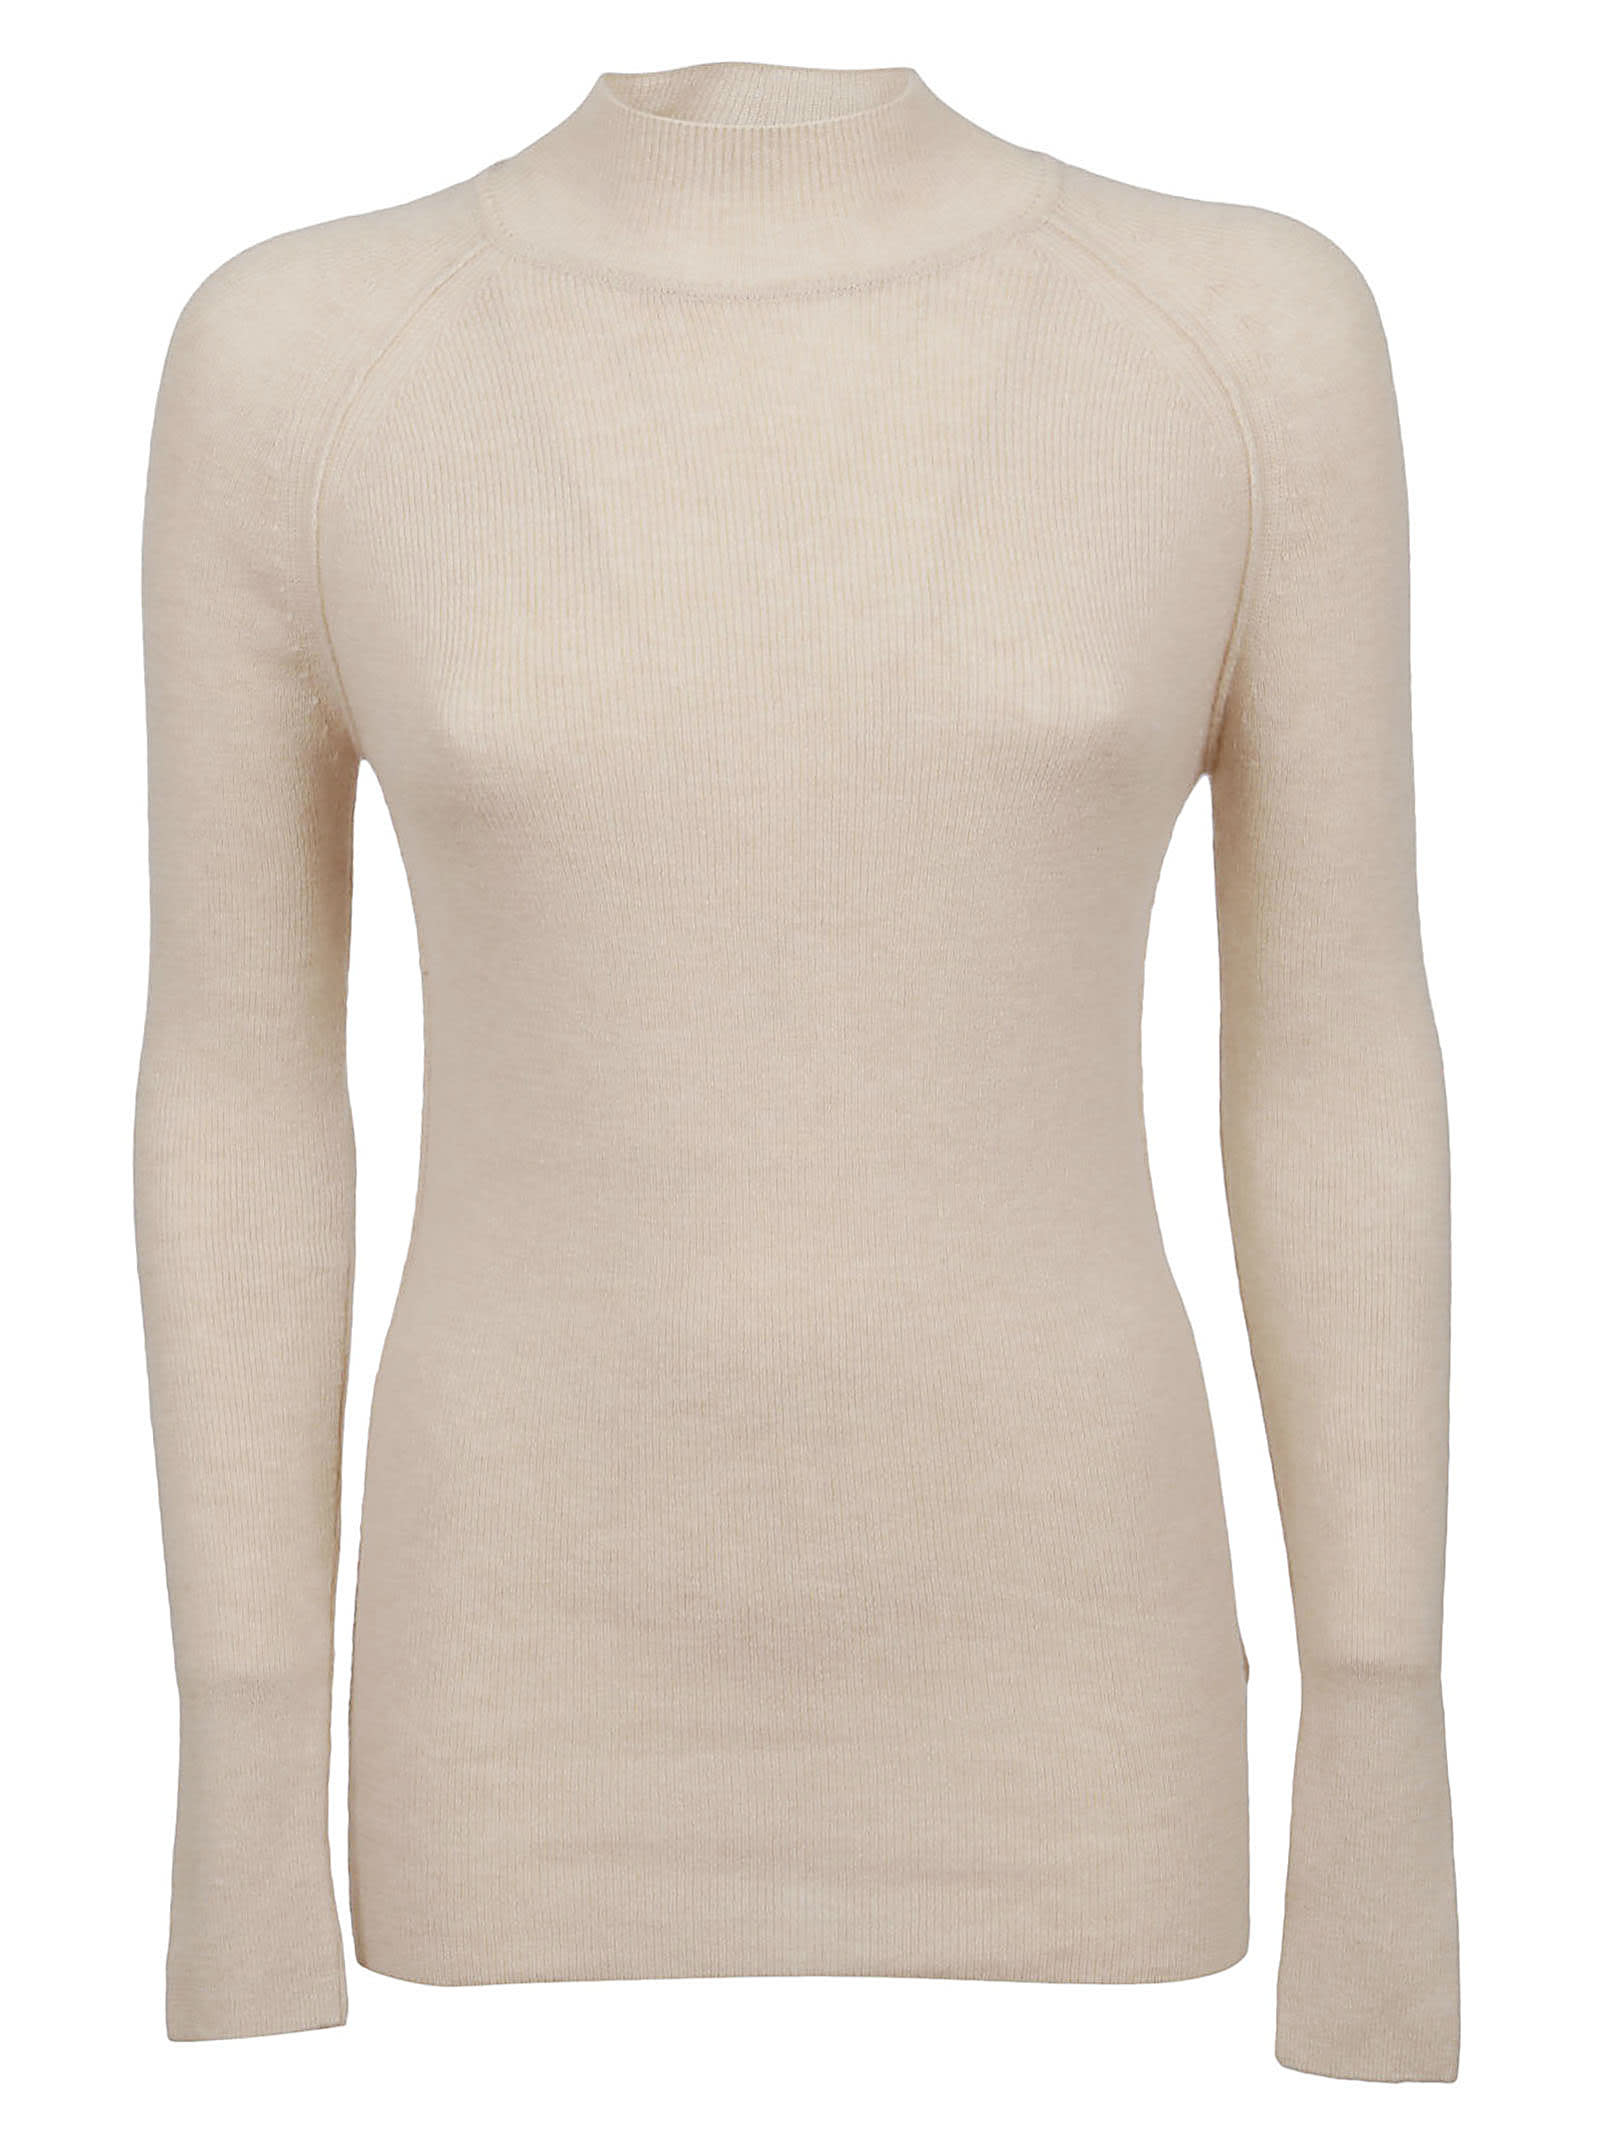 Forte Forte Ribbed Cashmere Wool Turtleneck Sweater